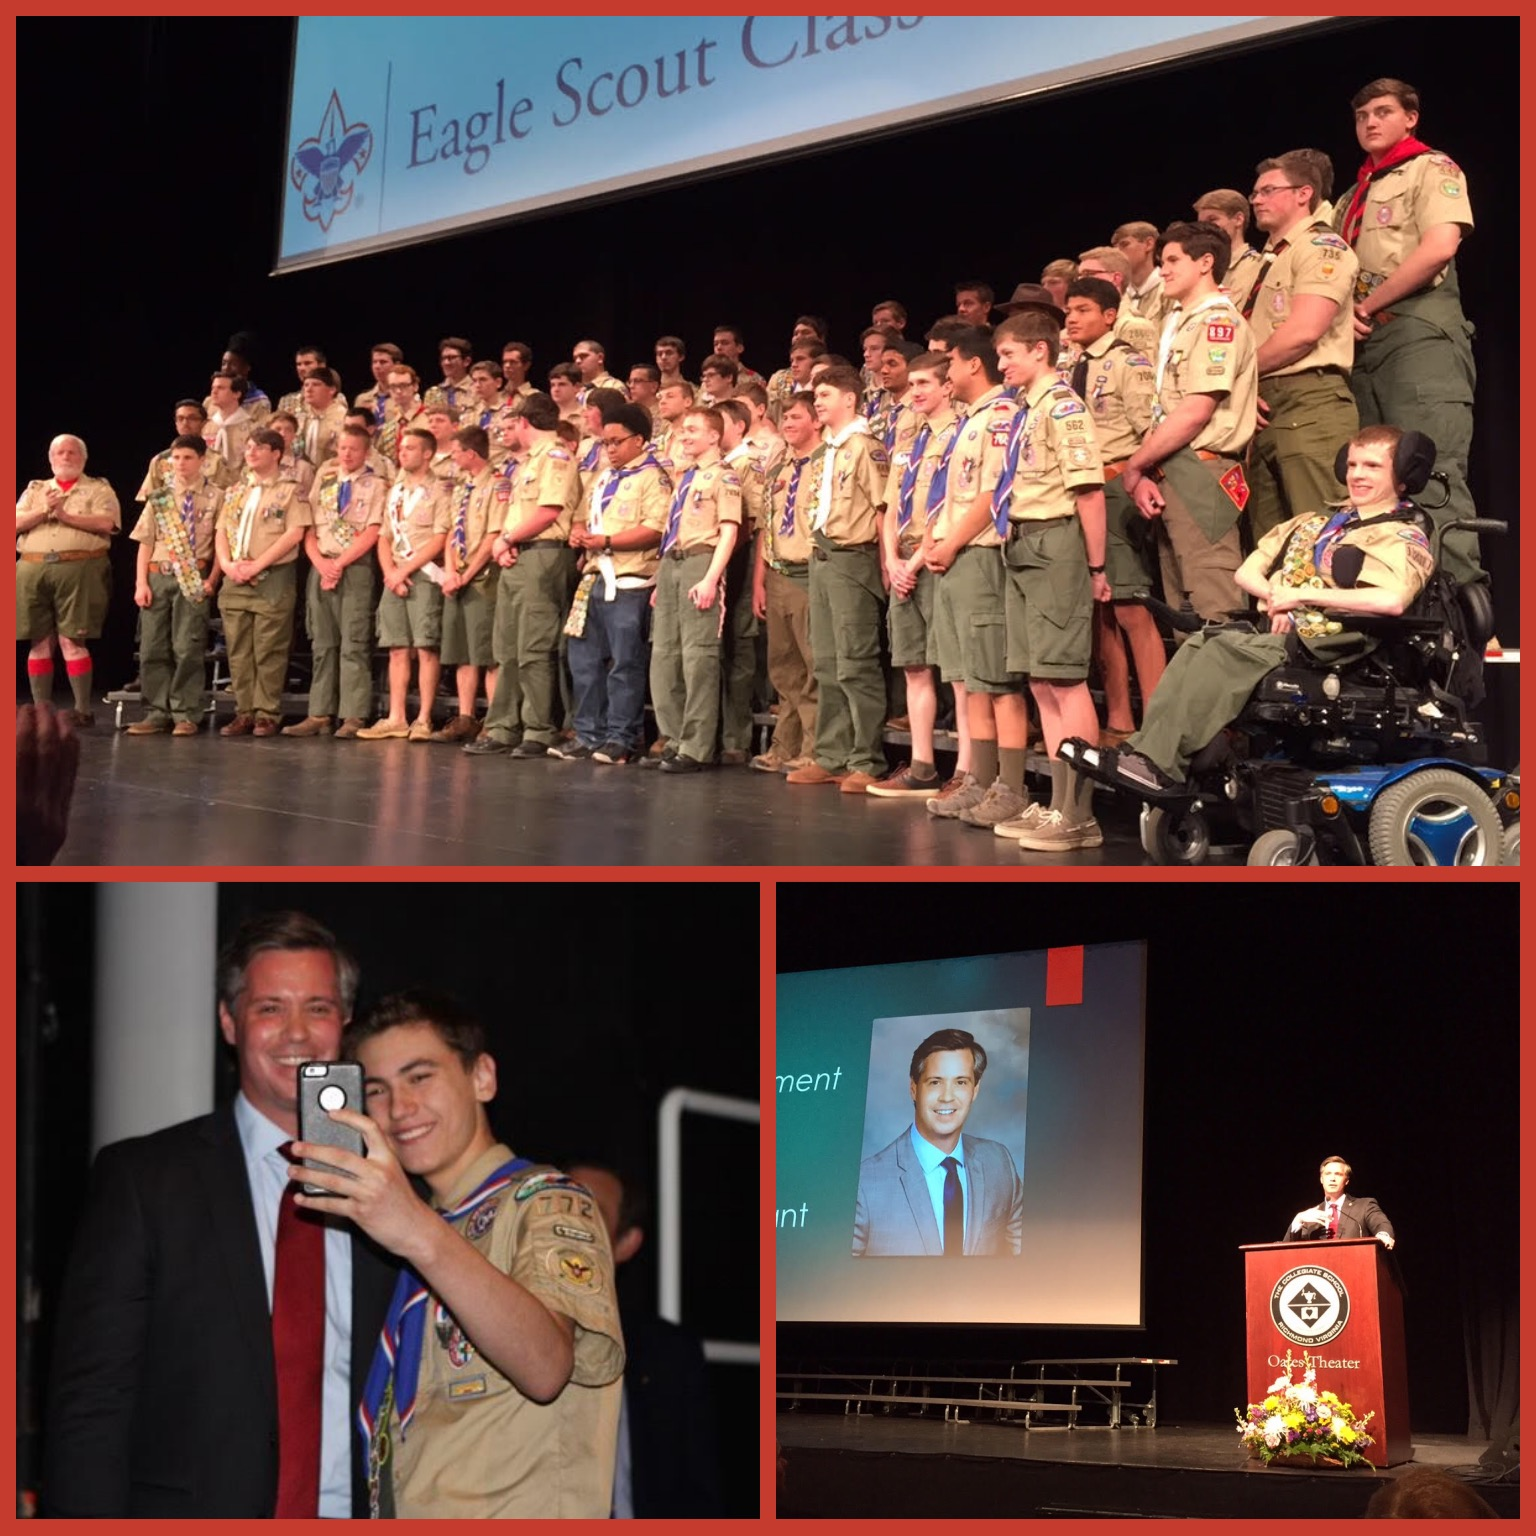 Eagle_Scout_Commenement_Collage.JPG